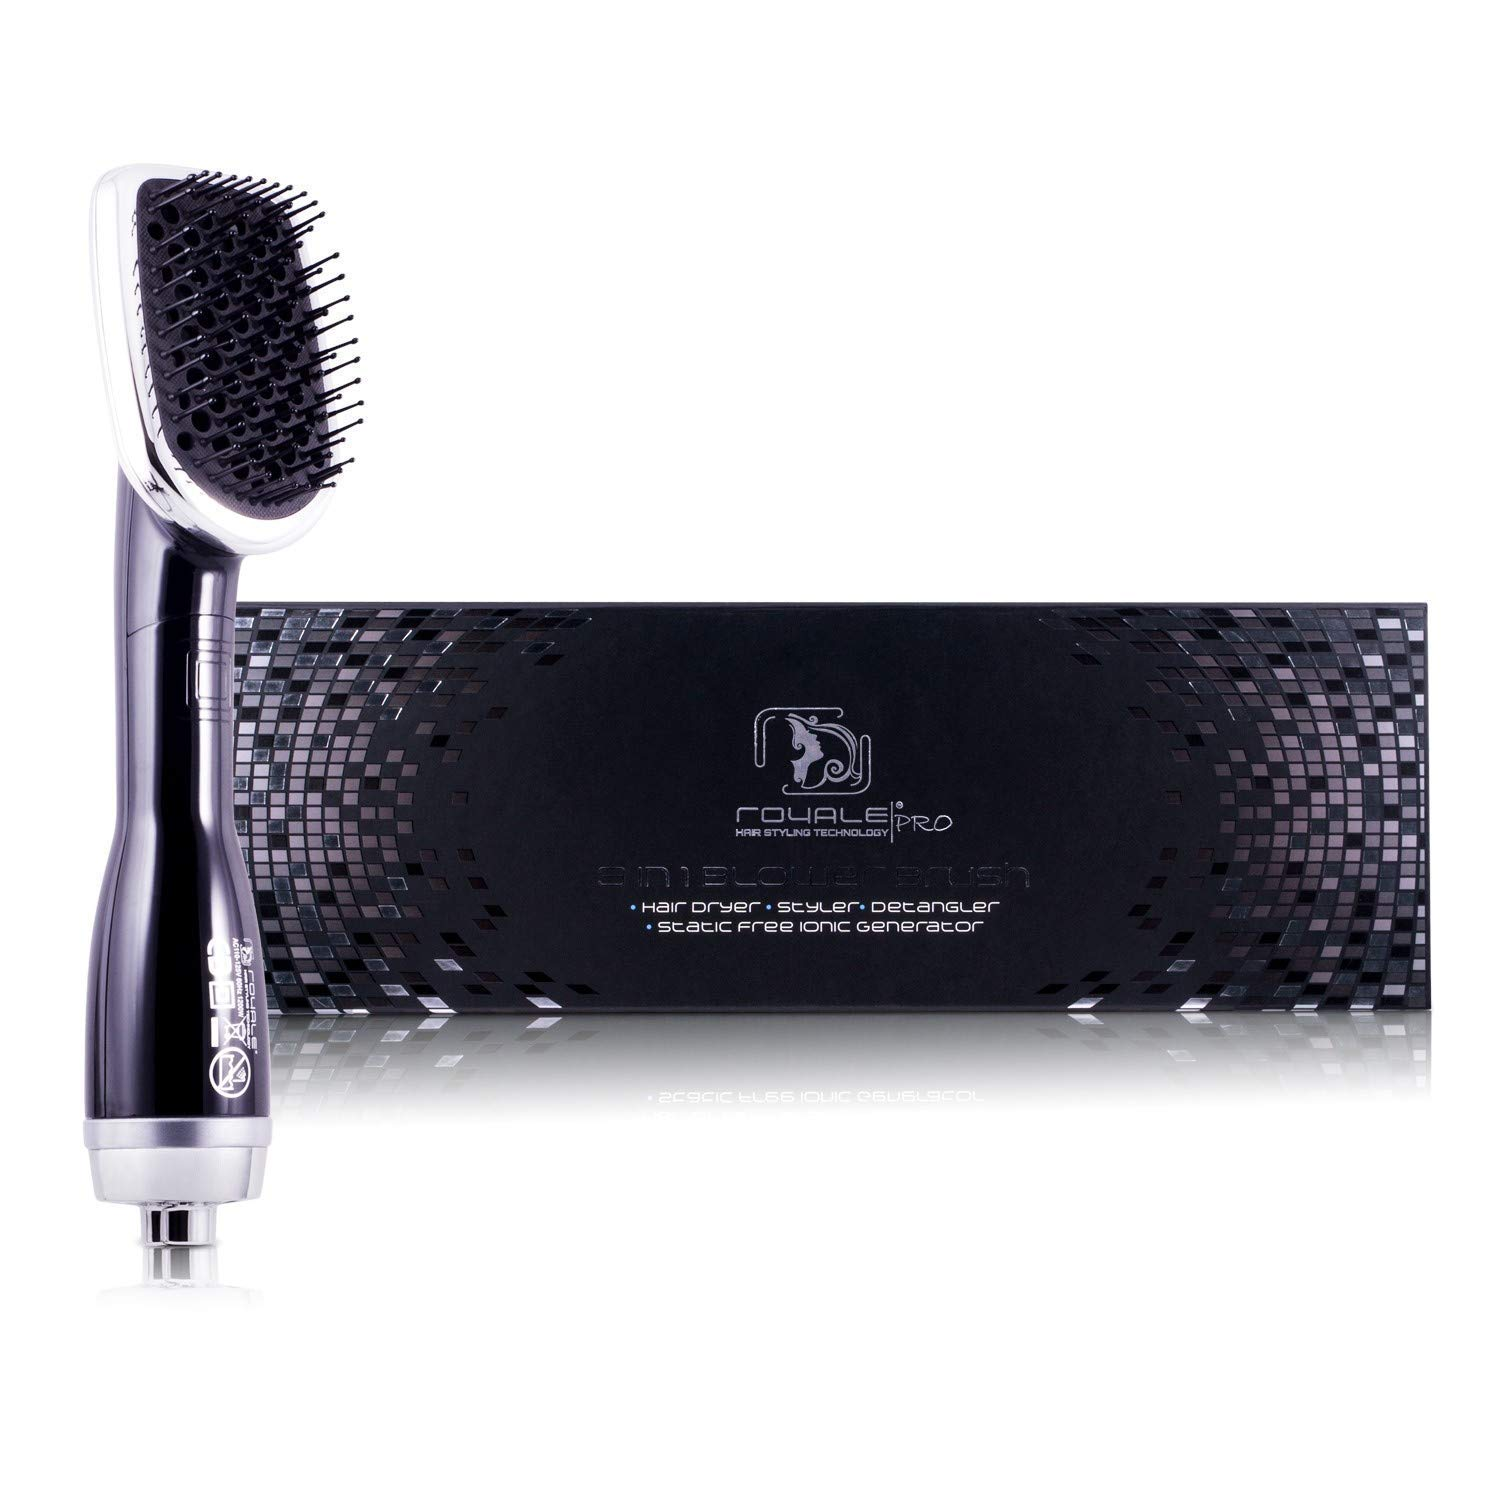 Professional Hairstyling Royale 3 in 1 Dryer, Styler & Detangle Brush 2000 Set - Interchangeable Attachments - Volumizes, Straightens and Curls - Tourmaline Technology - Black by Royale USA